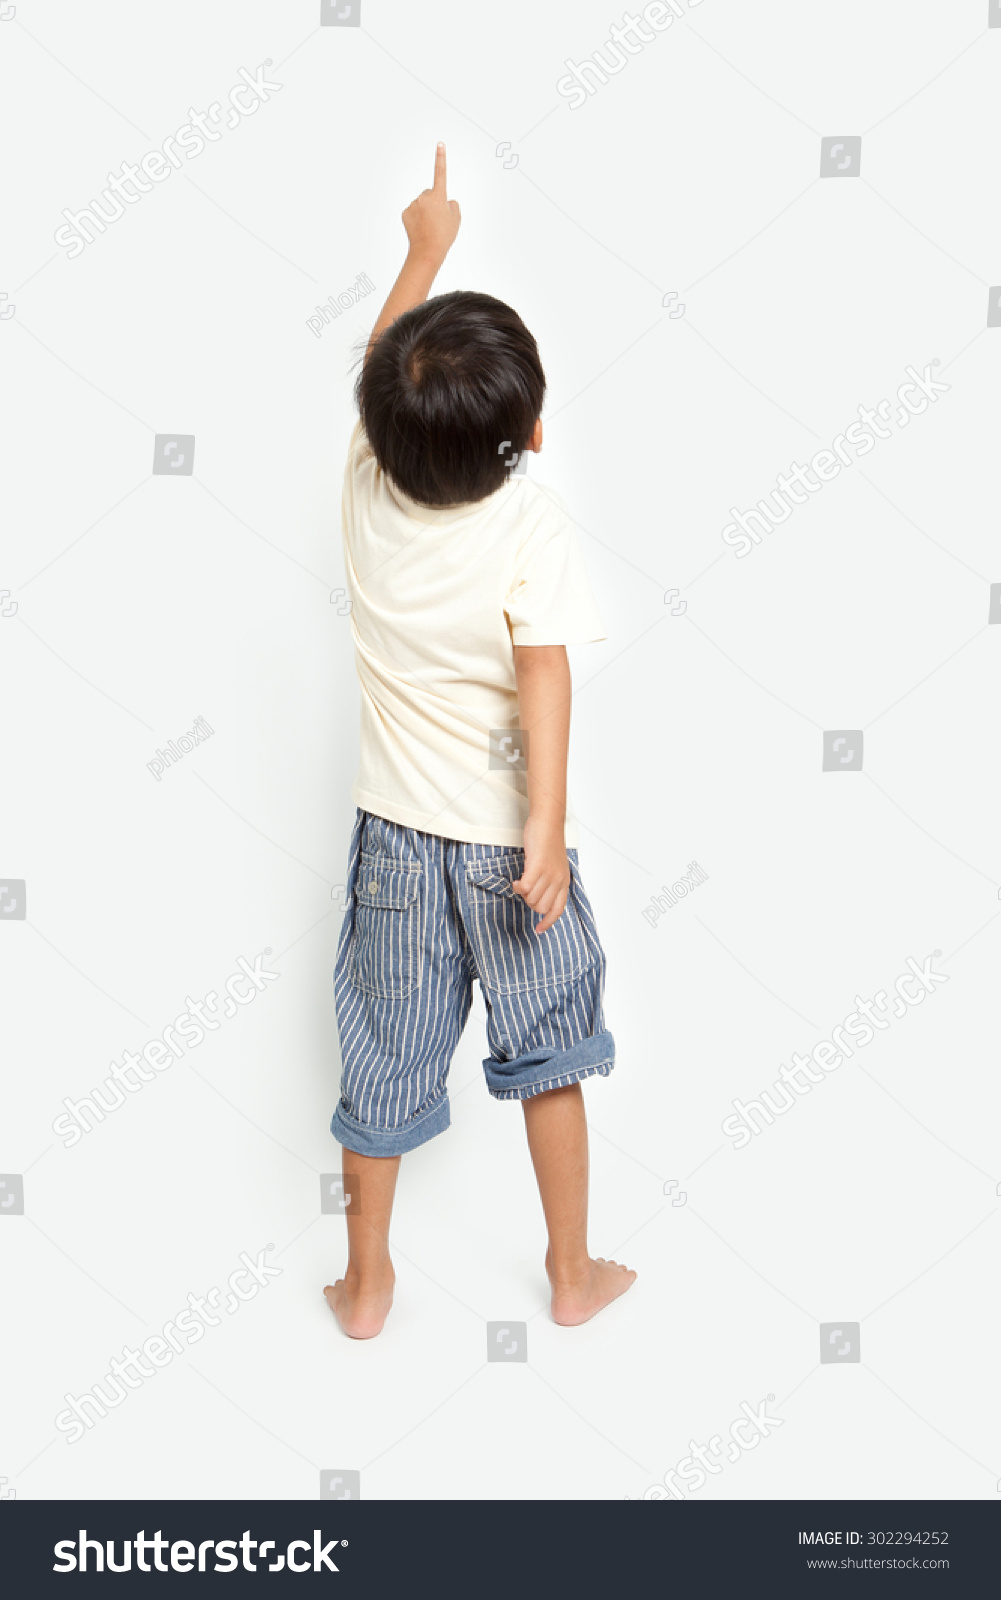 Child Pointing Wall Back View Isolated Stock Photo ...